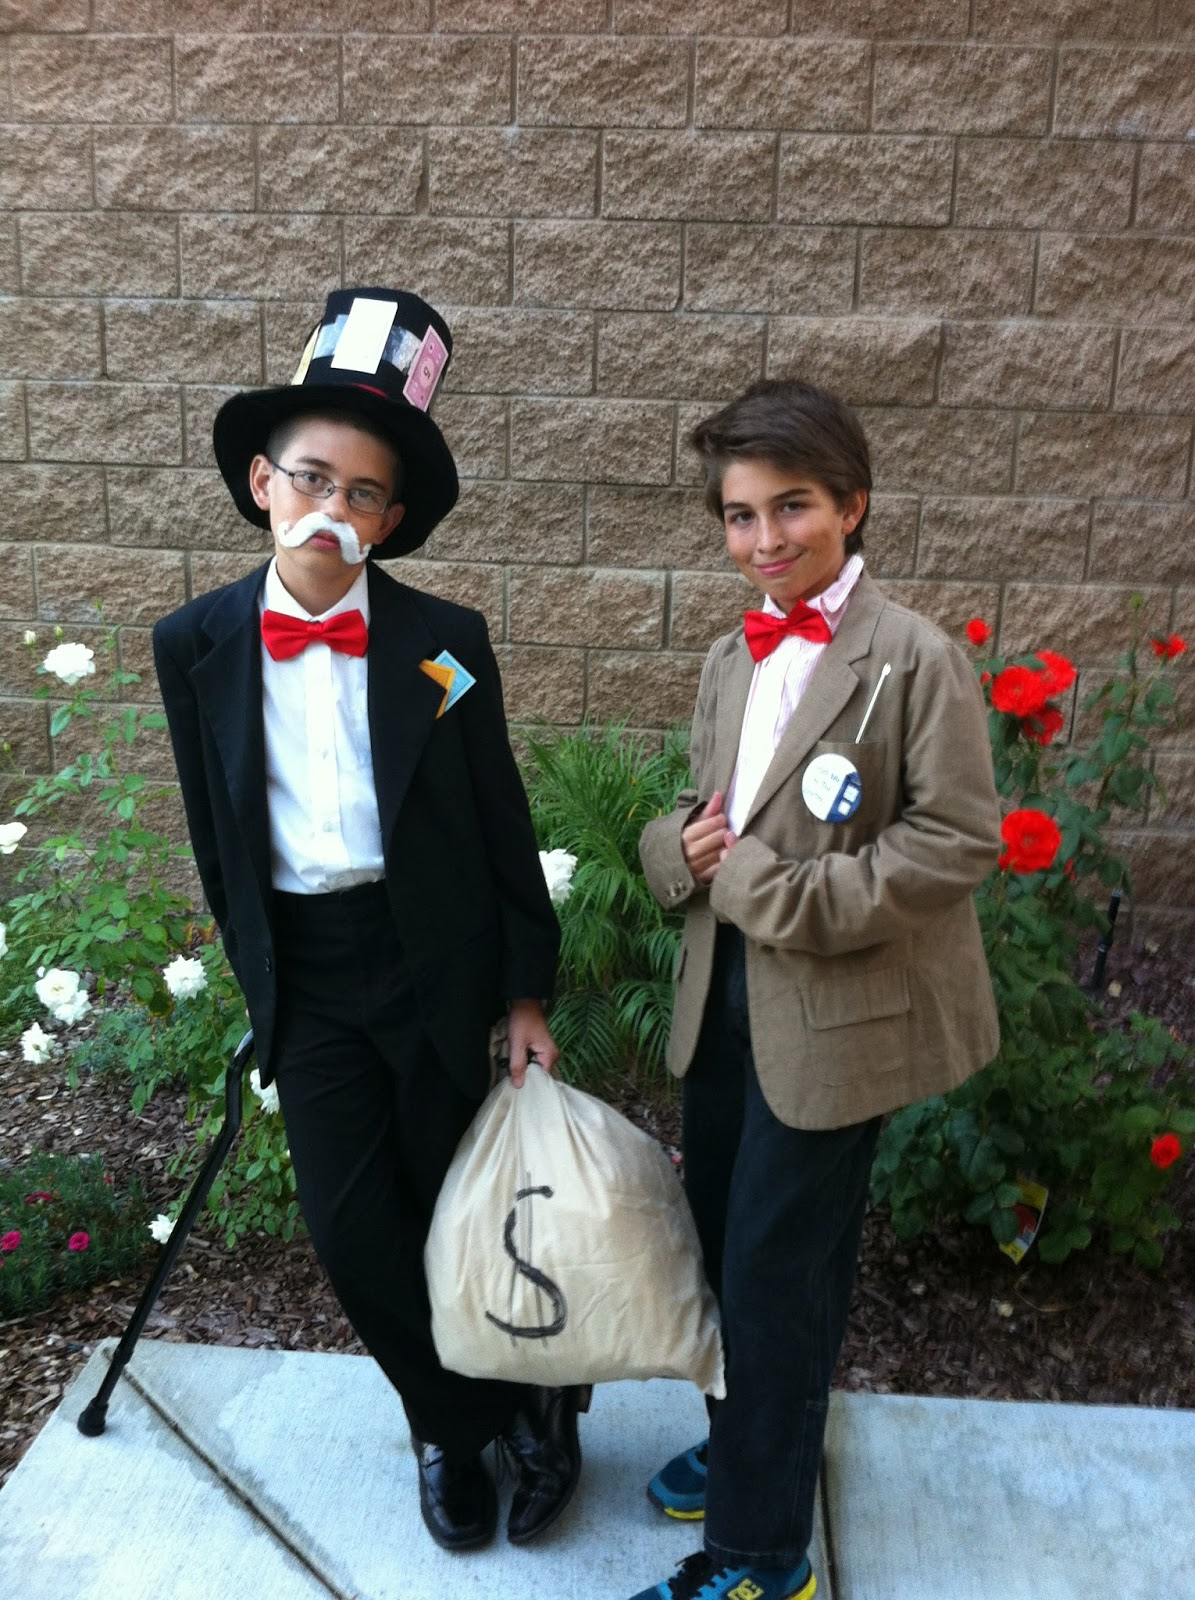 Monopoly Halloween Costume Ideas